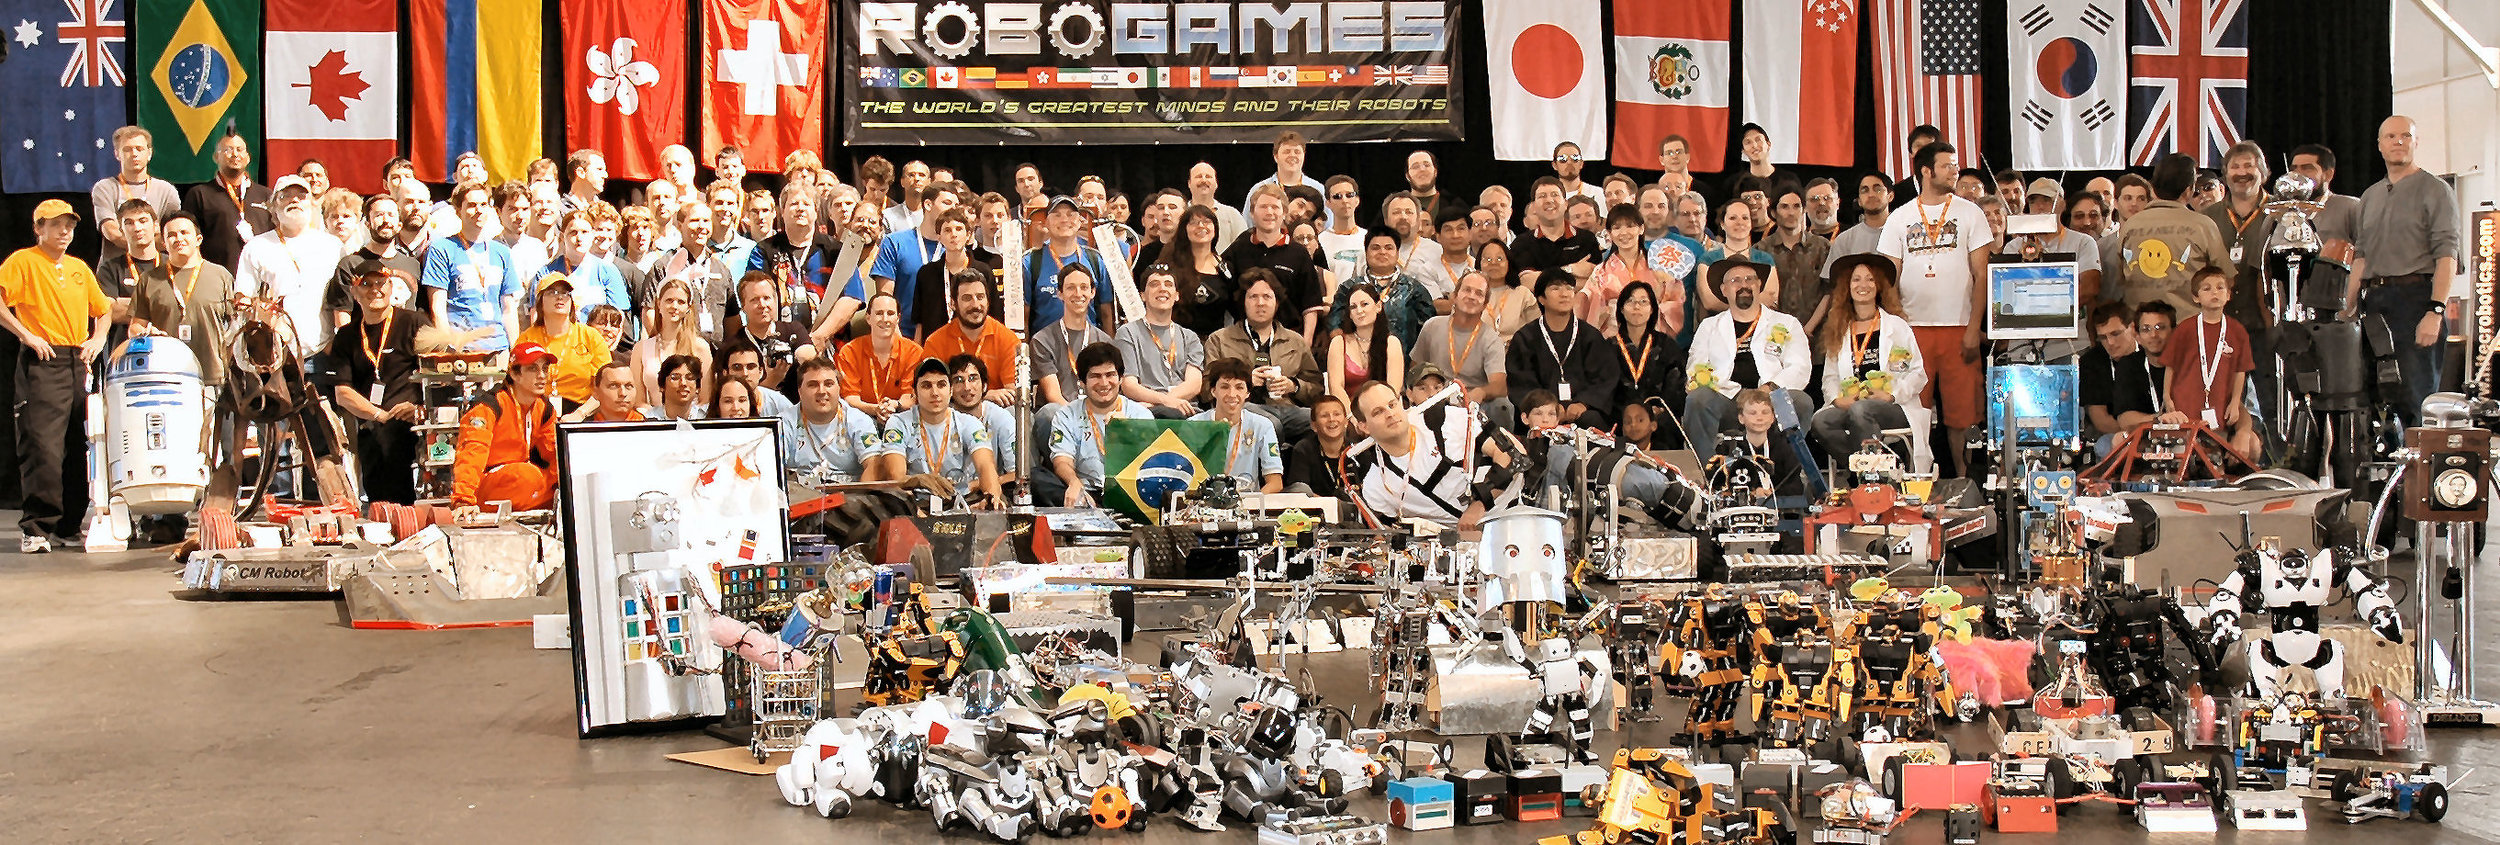 Image from robogames.net